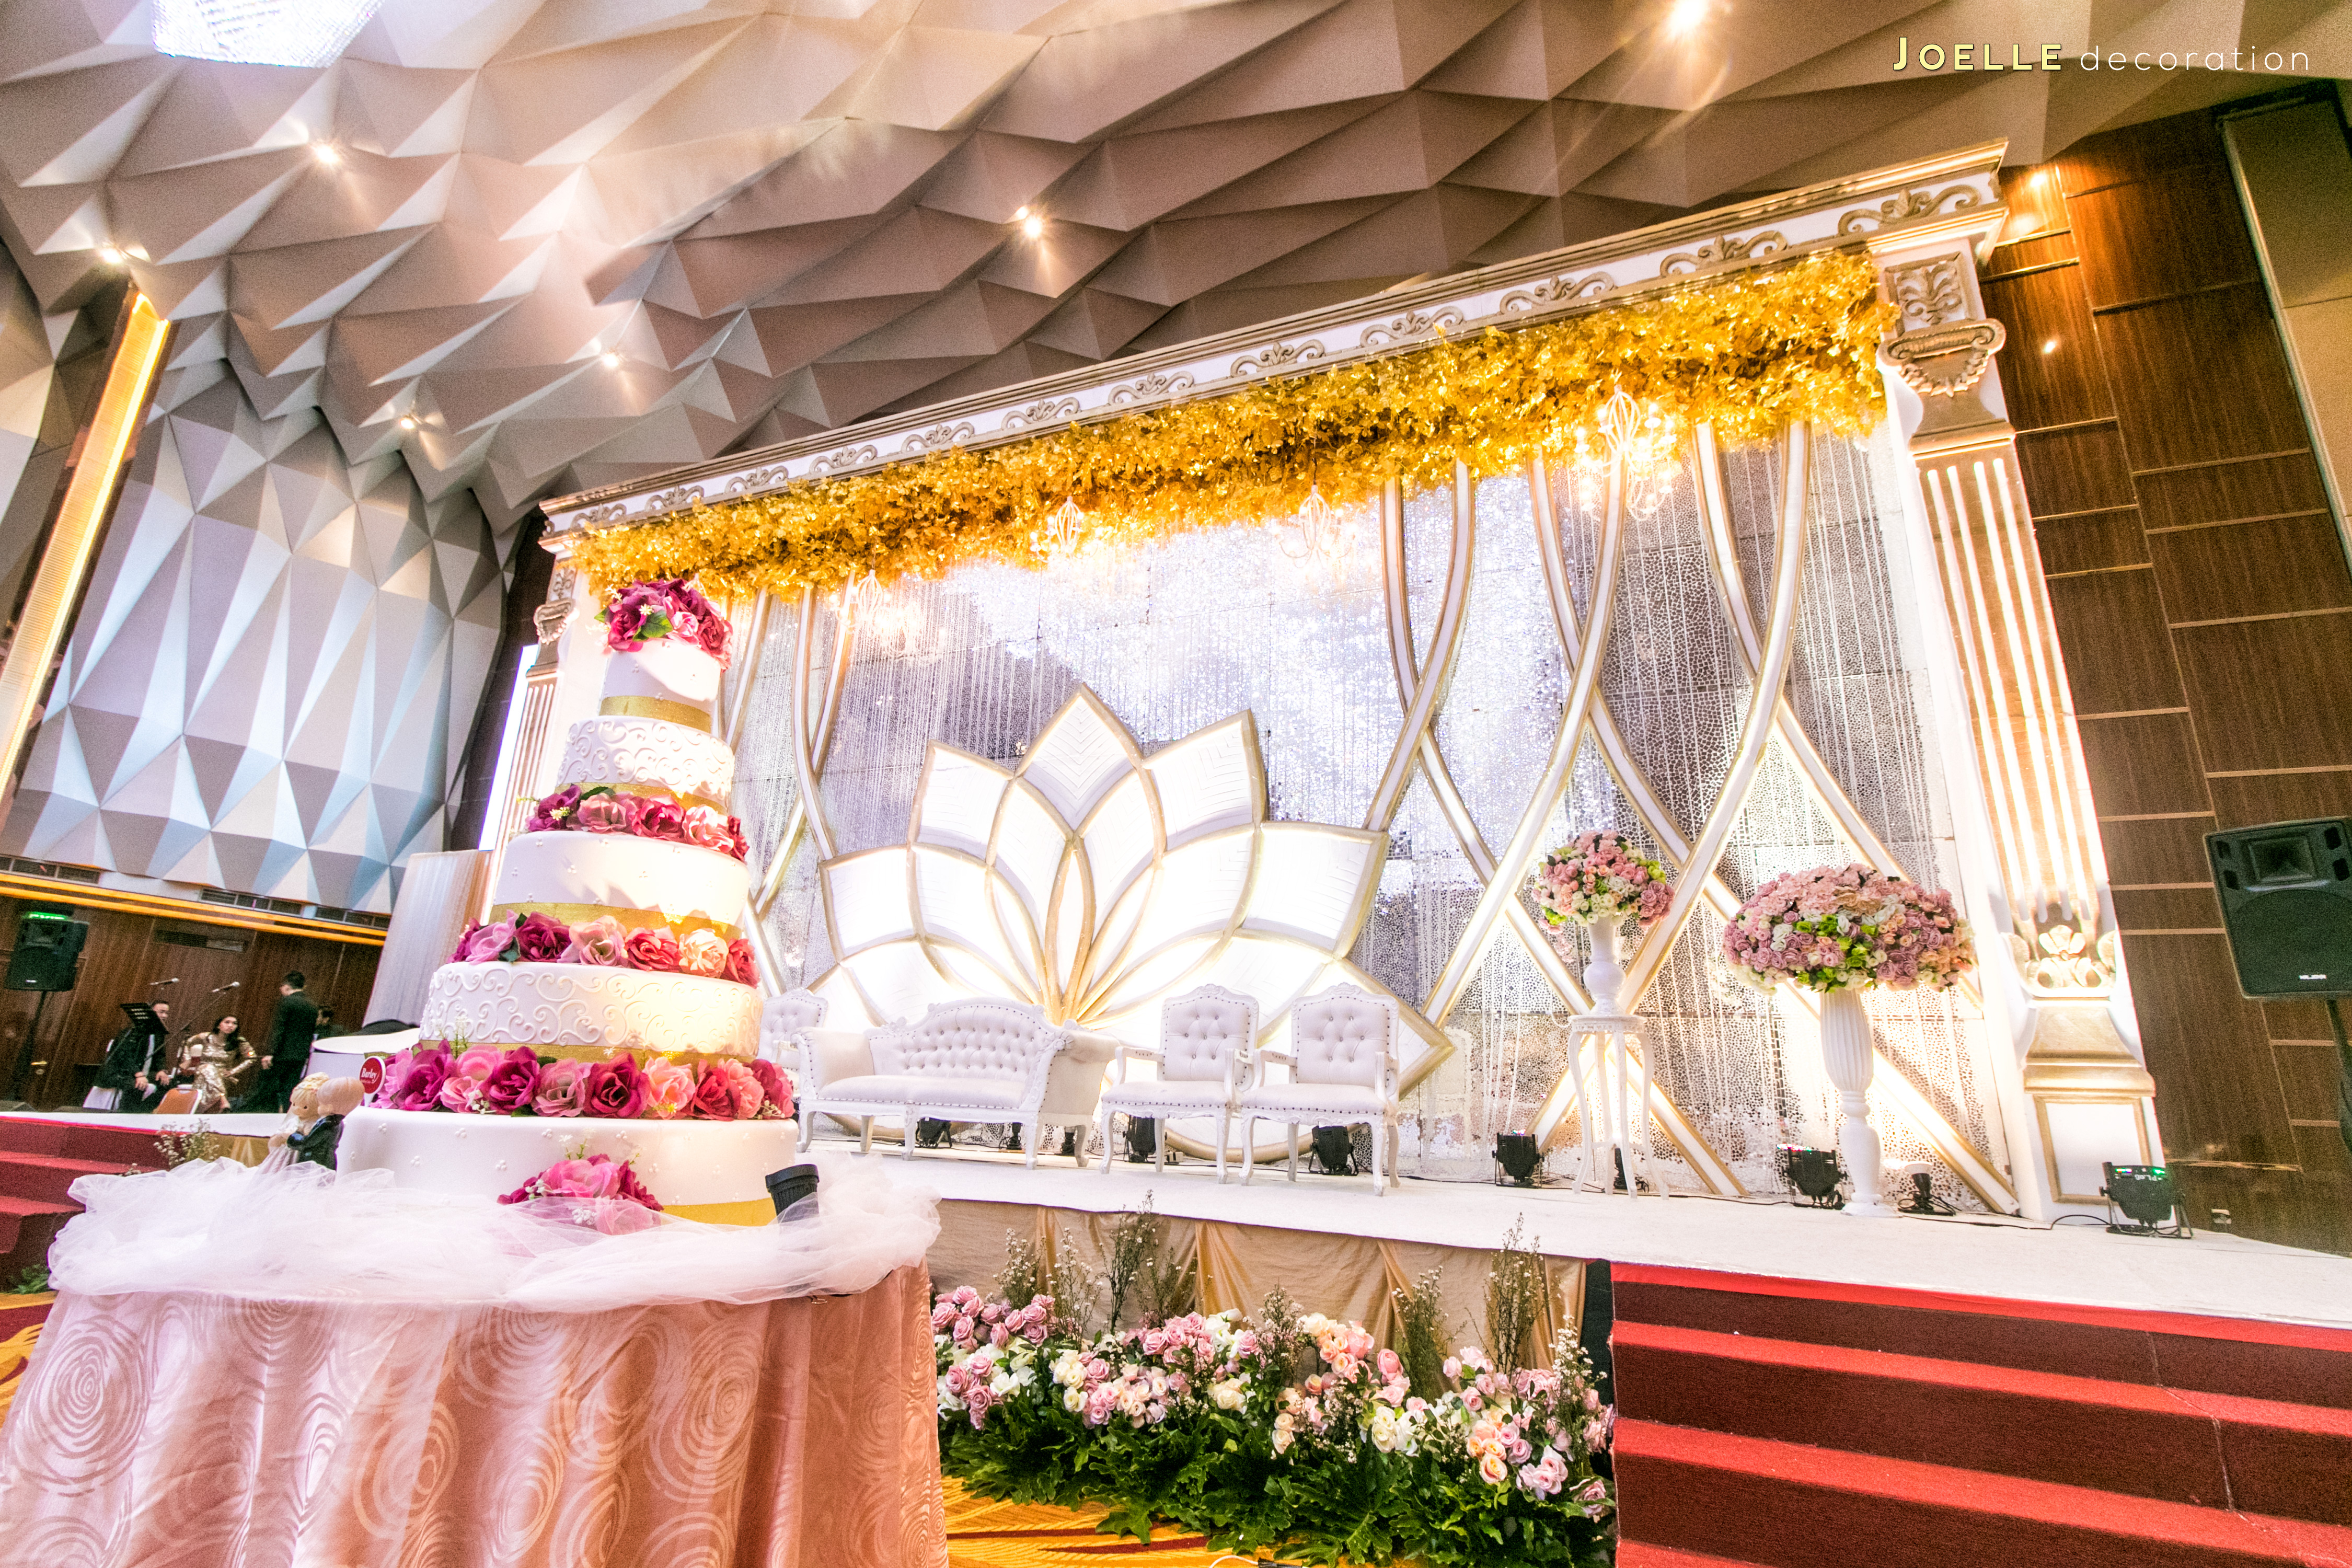 Wedding decoration tangerang all the best ideas about marriage wedding decoration terbaik di jakarta images wedding junglespirit Choice Image